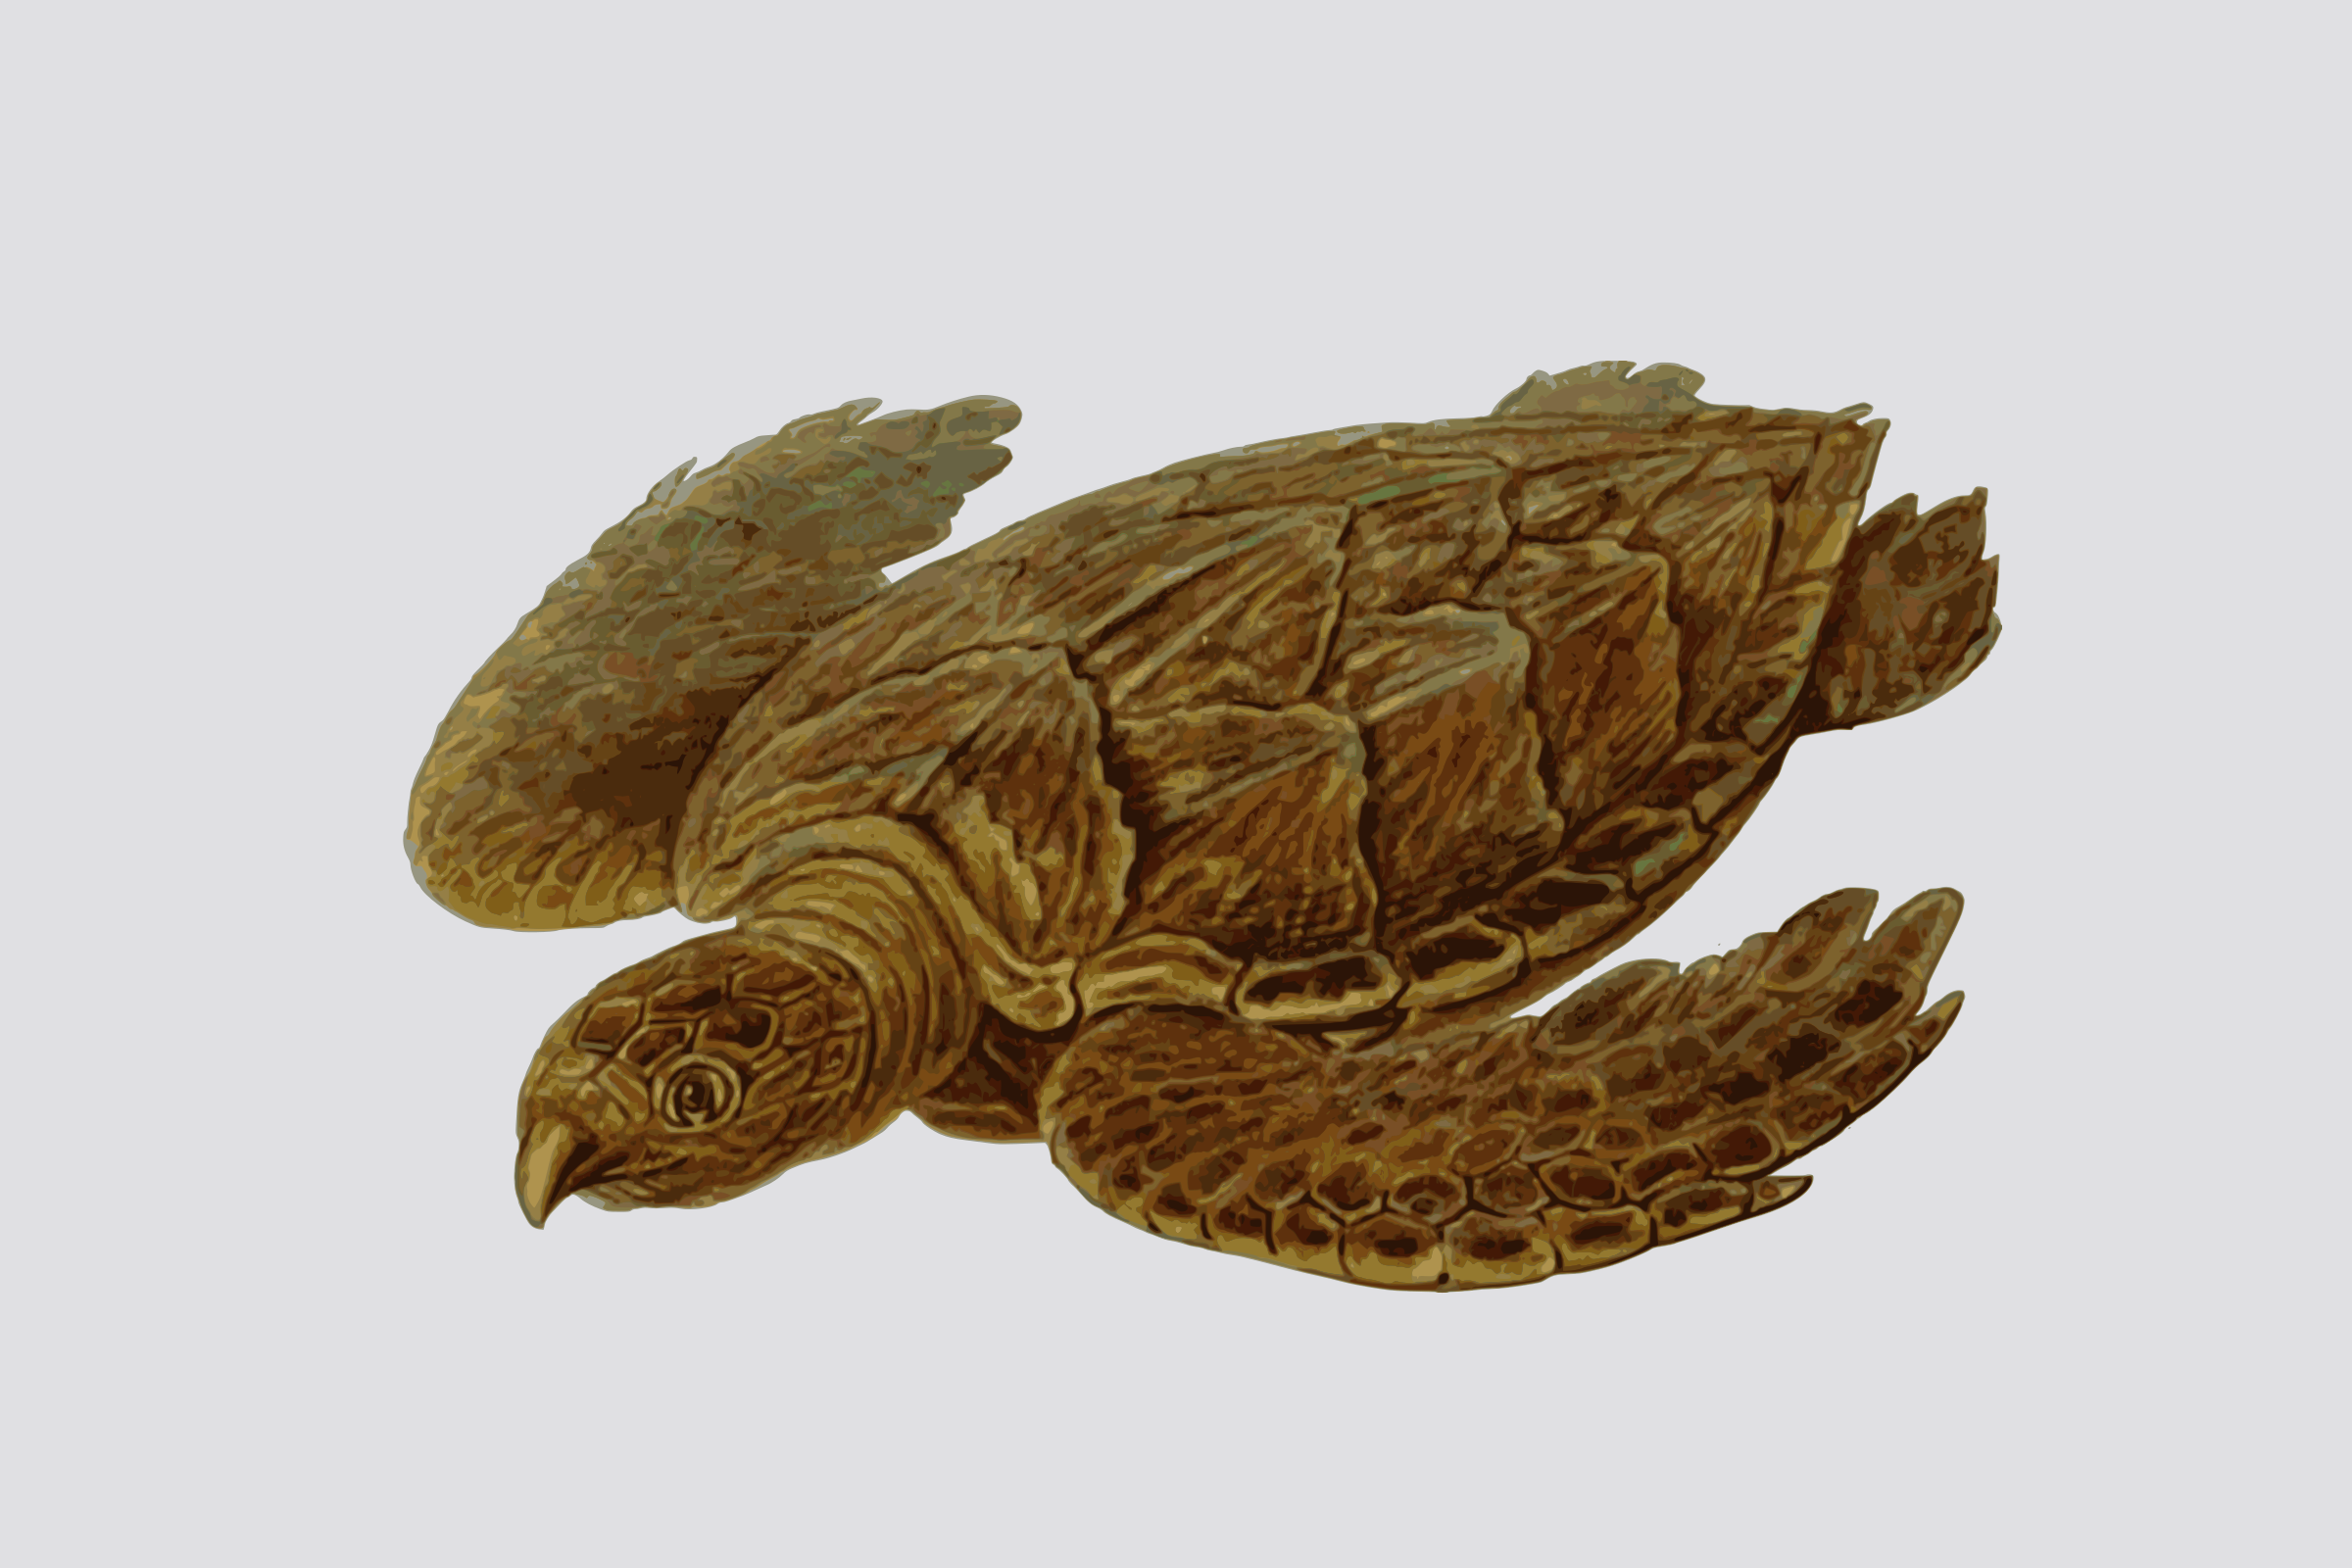 turtle by yamachem